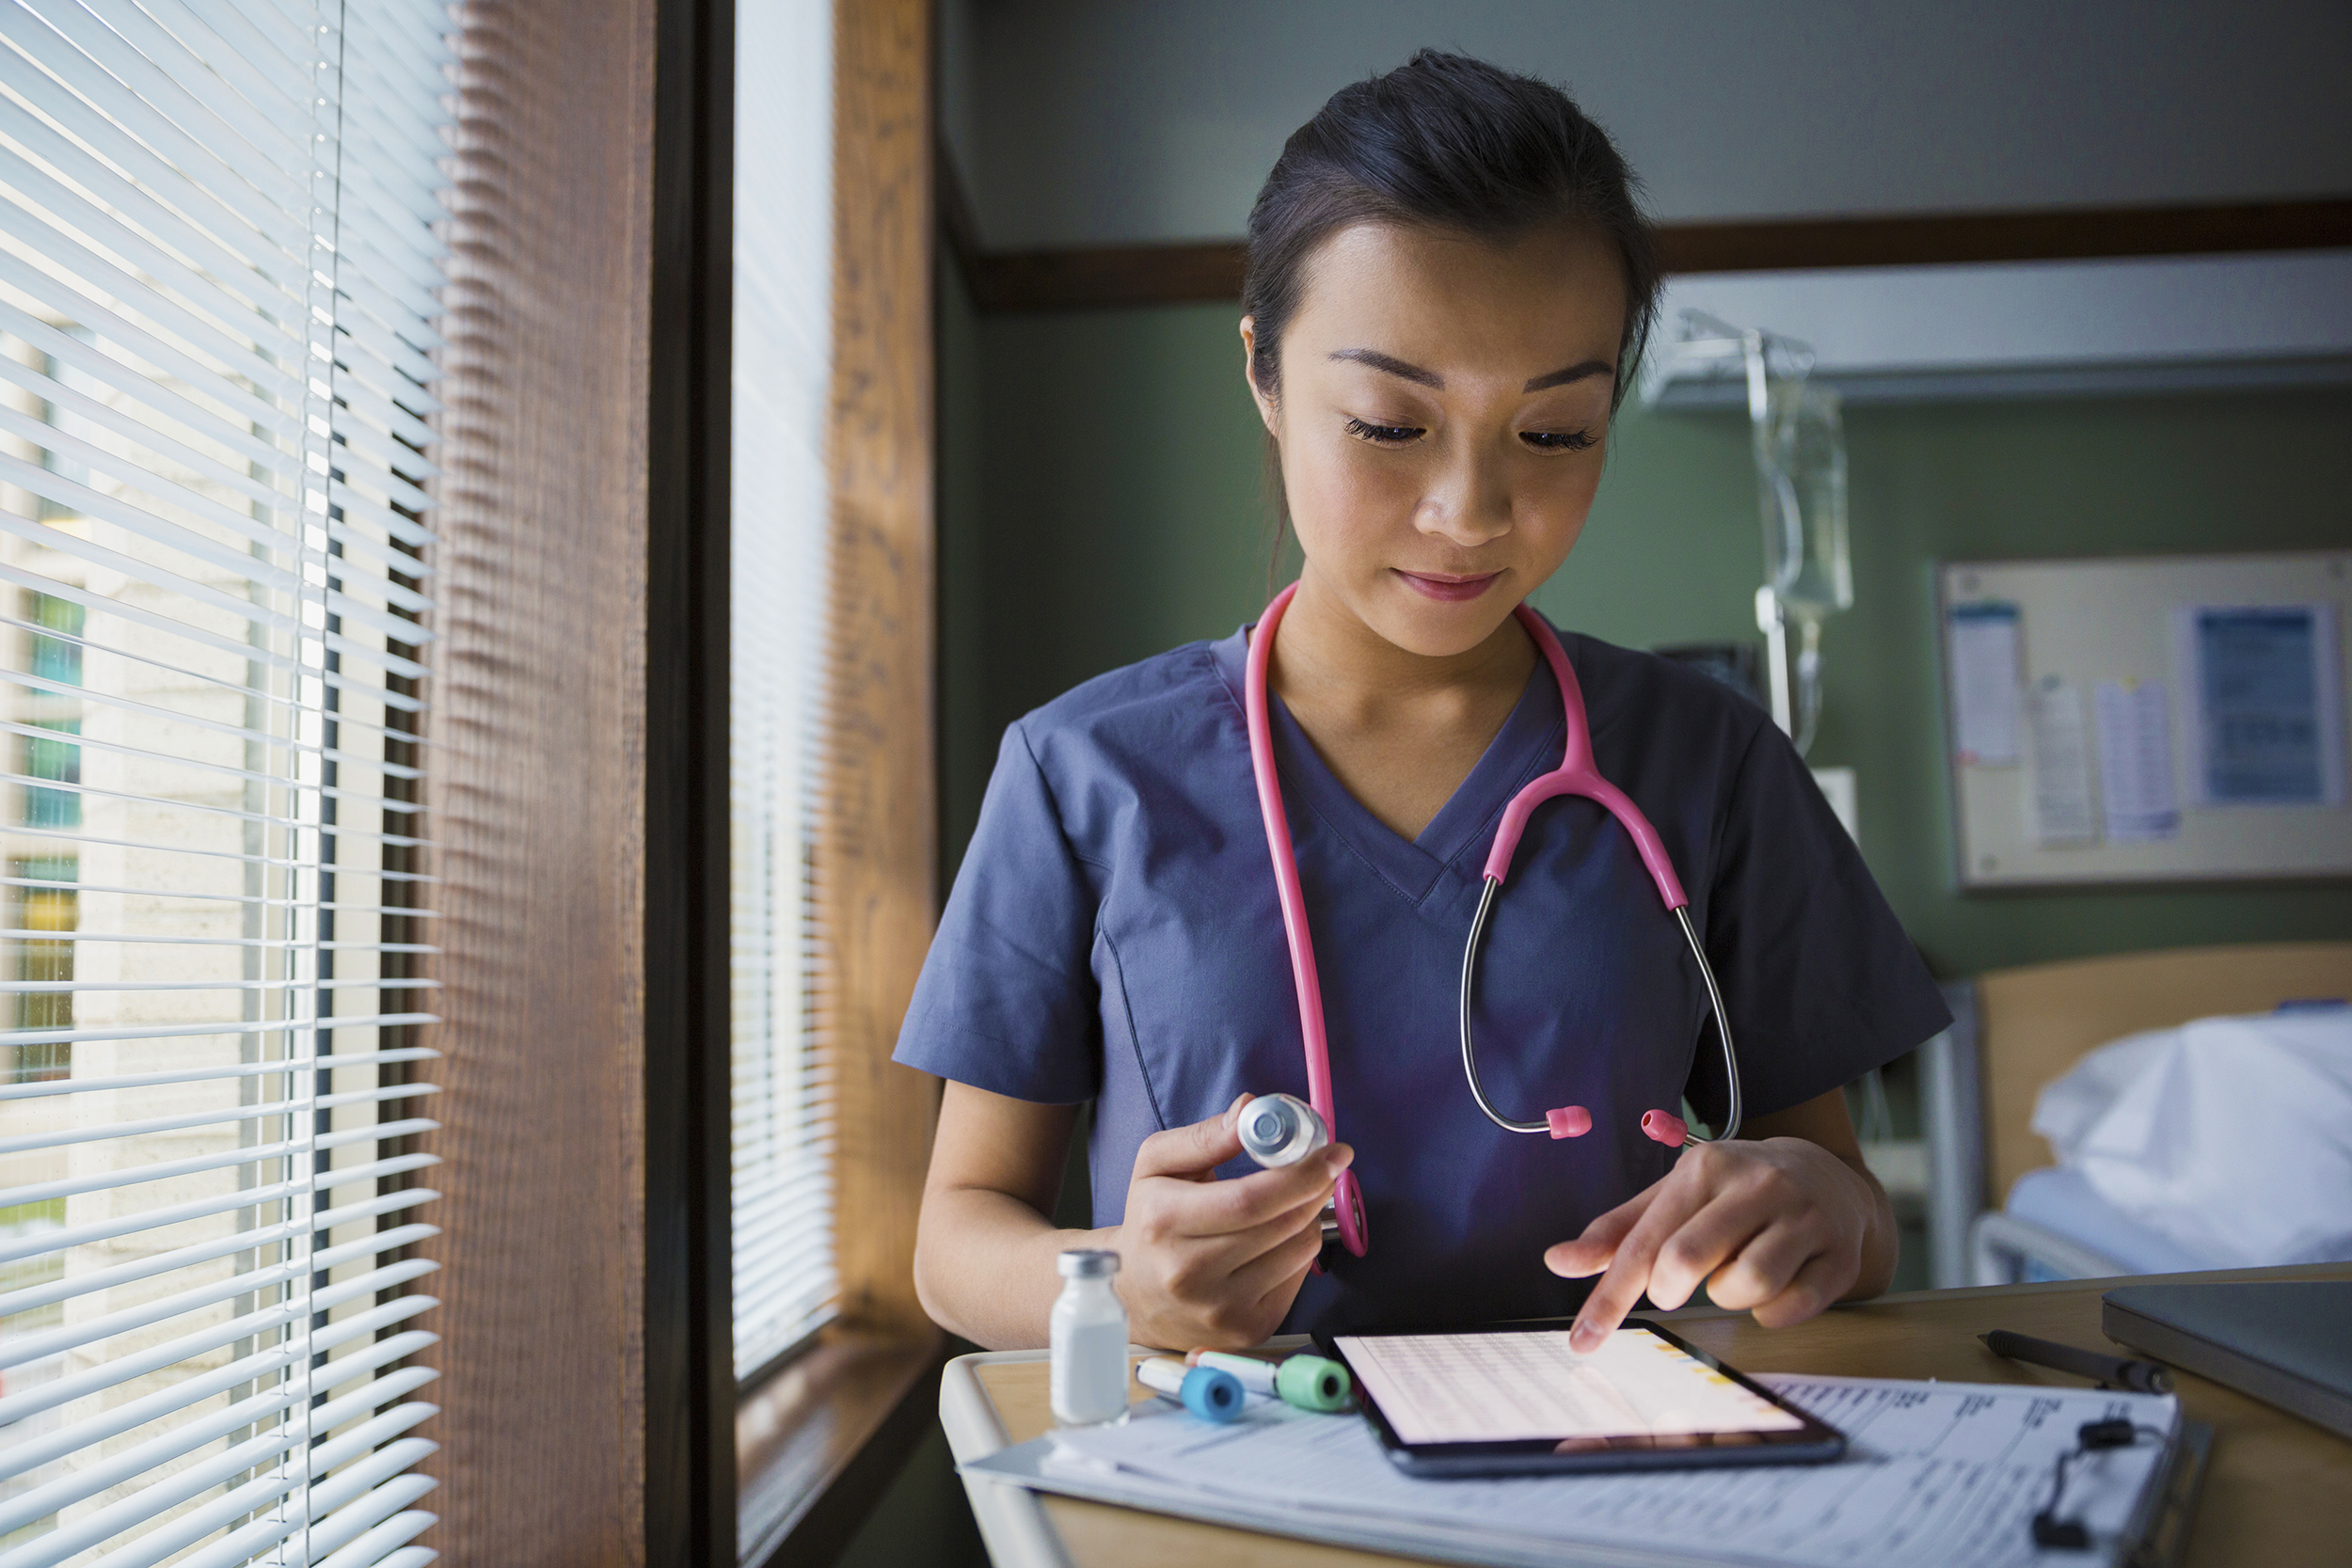 Nurse-using-digital-tablet-in-hospital-room